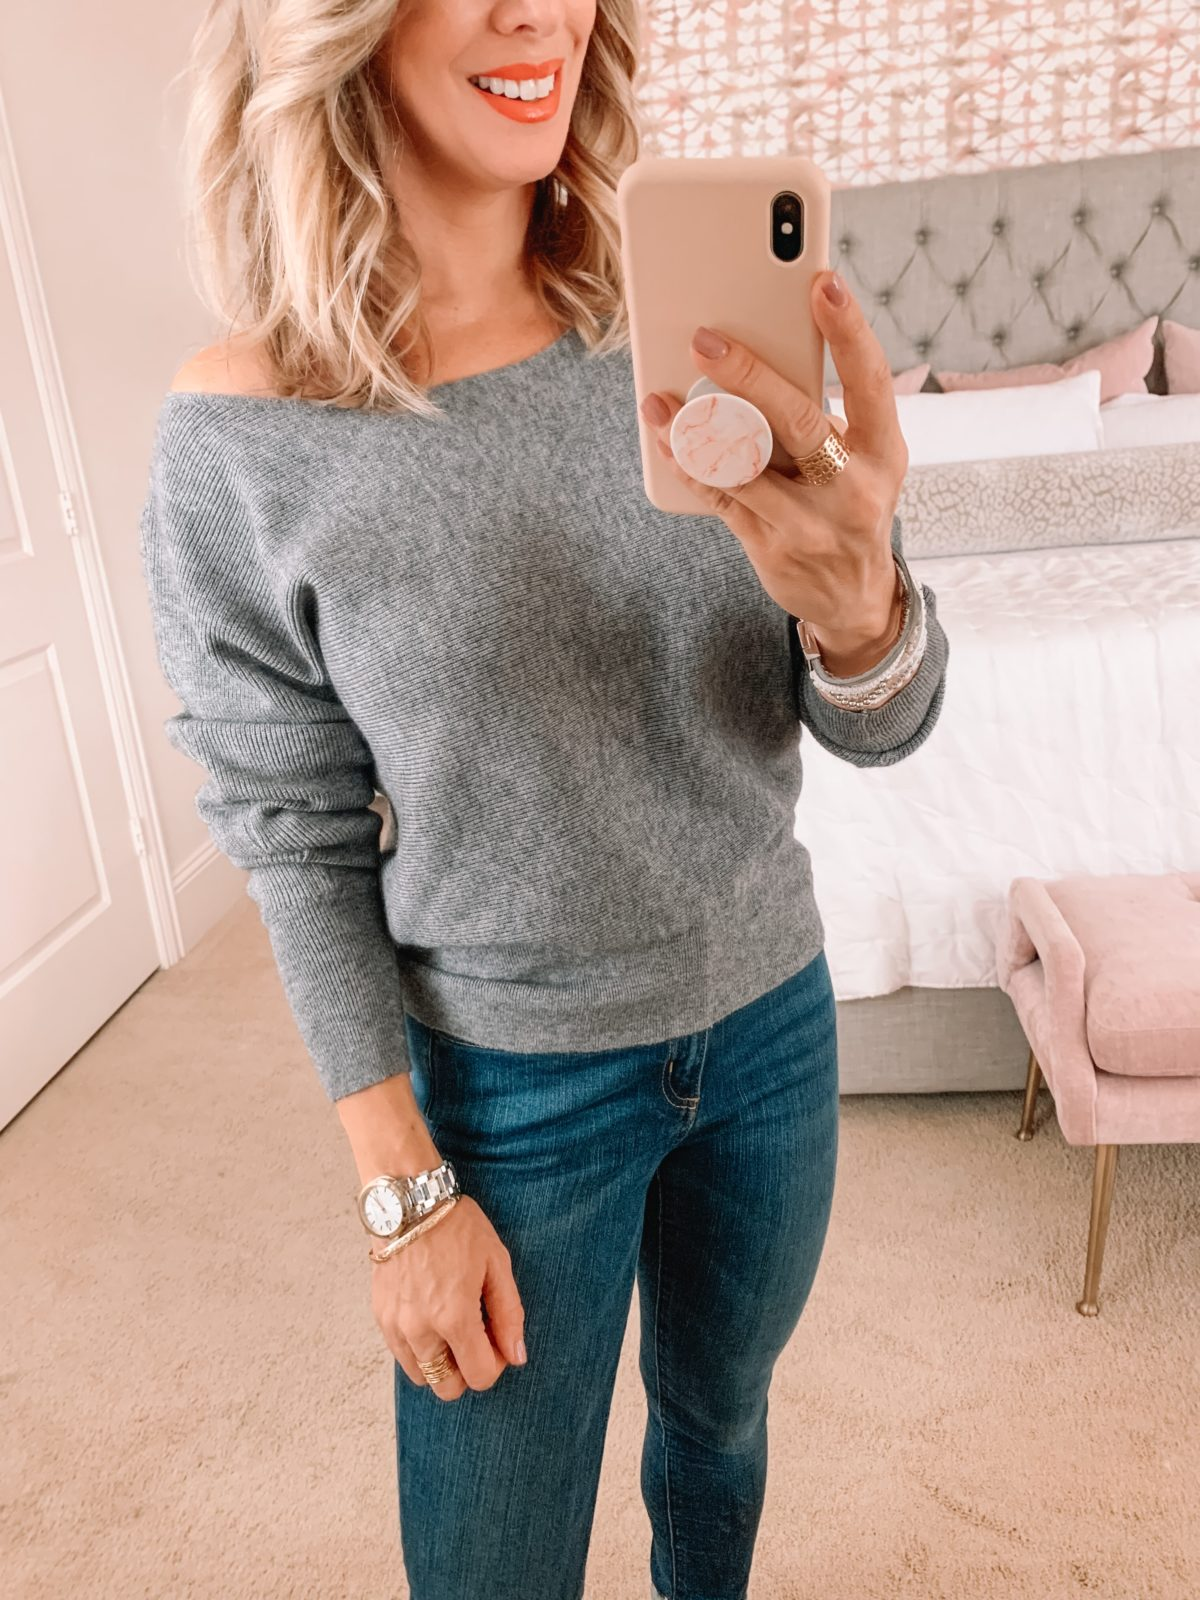 Amazon Fashion Faves, Gray Sweater, Jeans